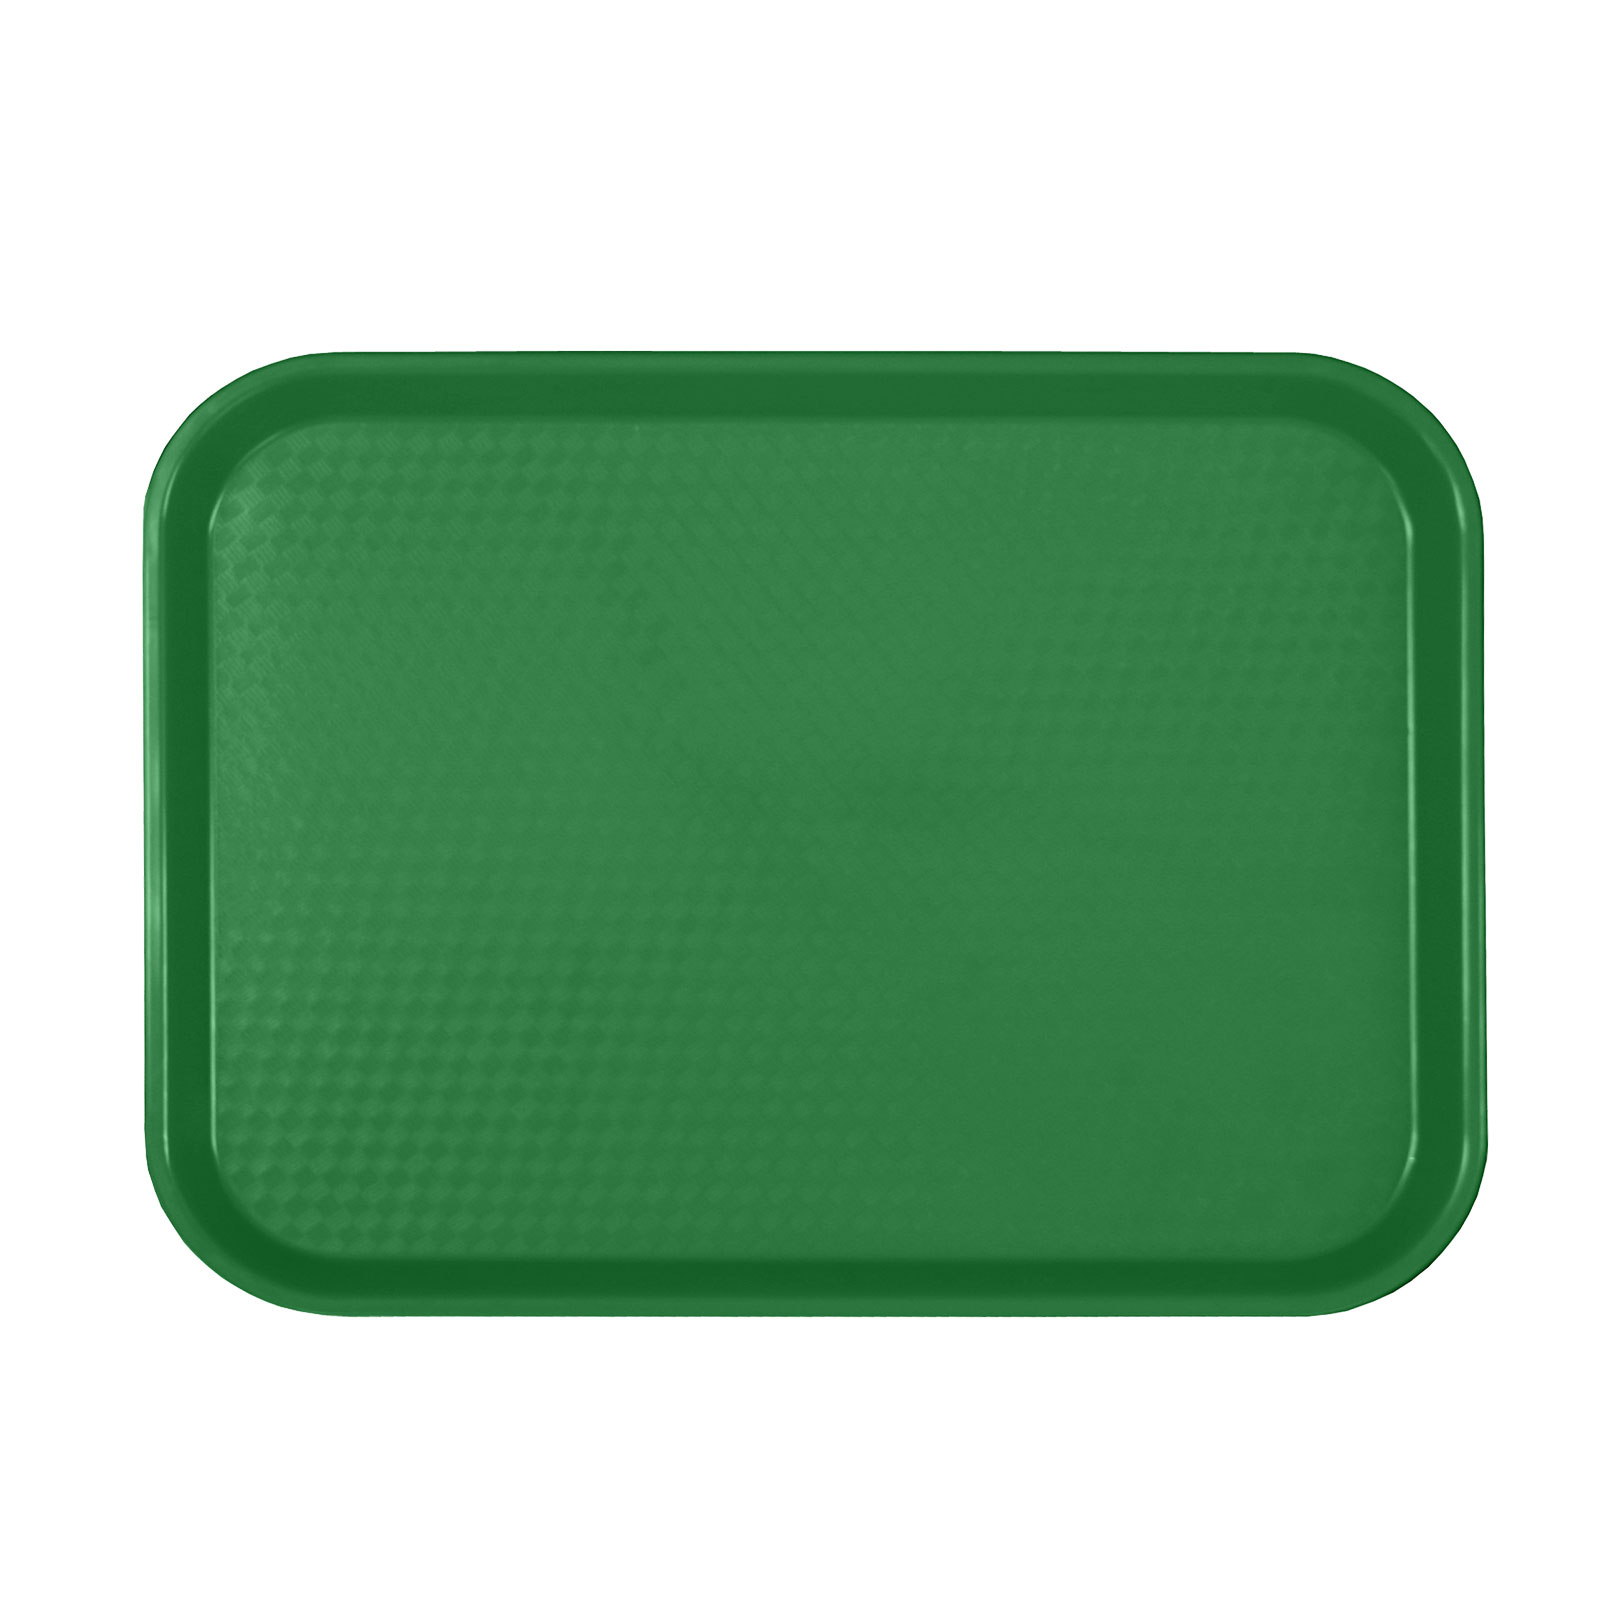 Thunder Group PLFFT1216GR tray, fast food